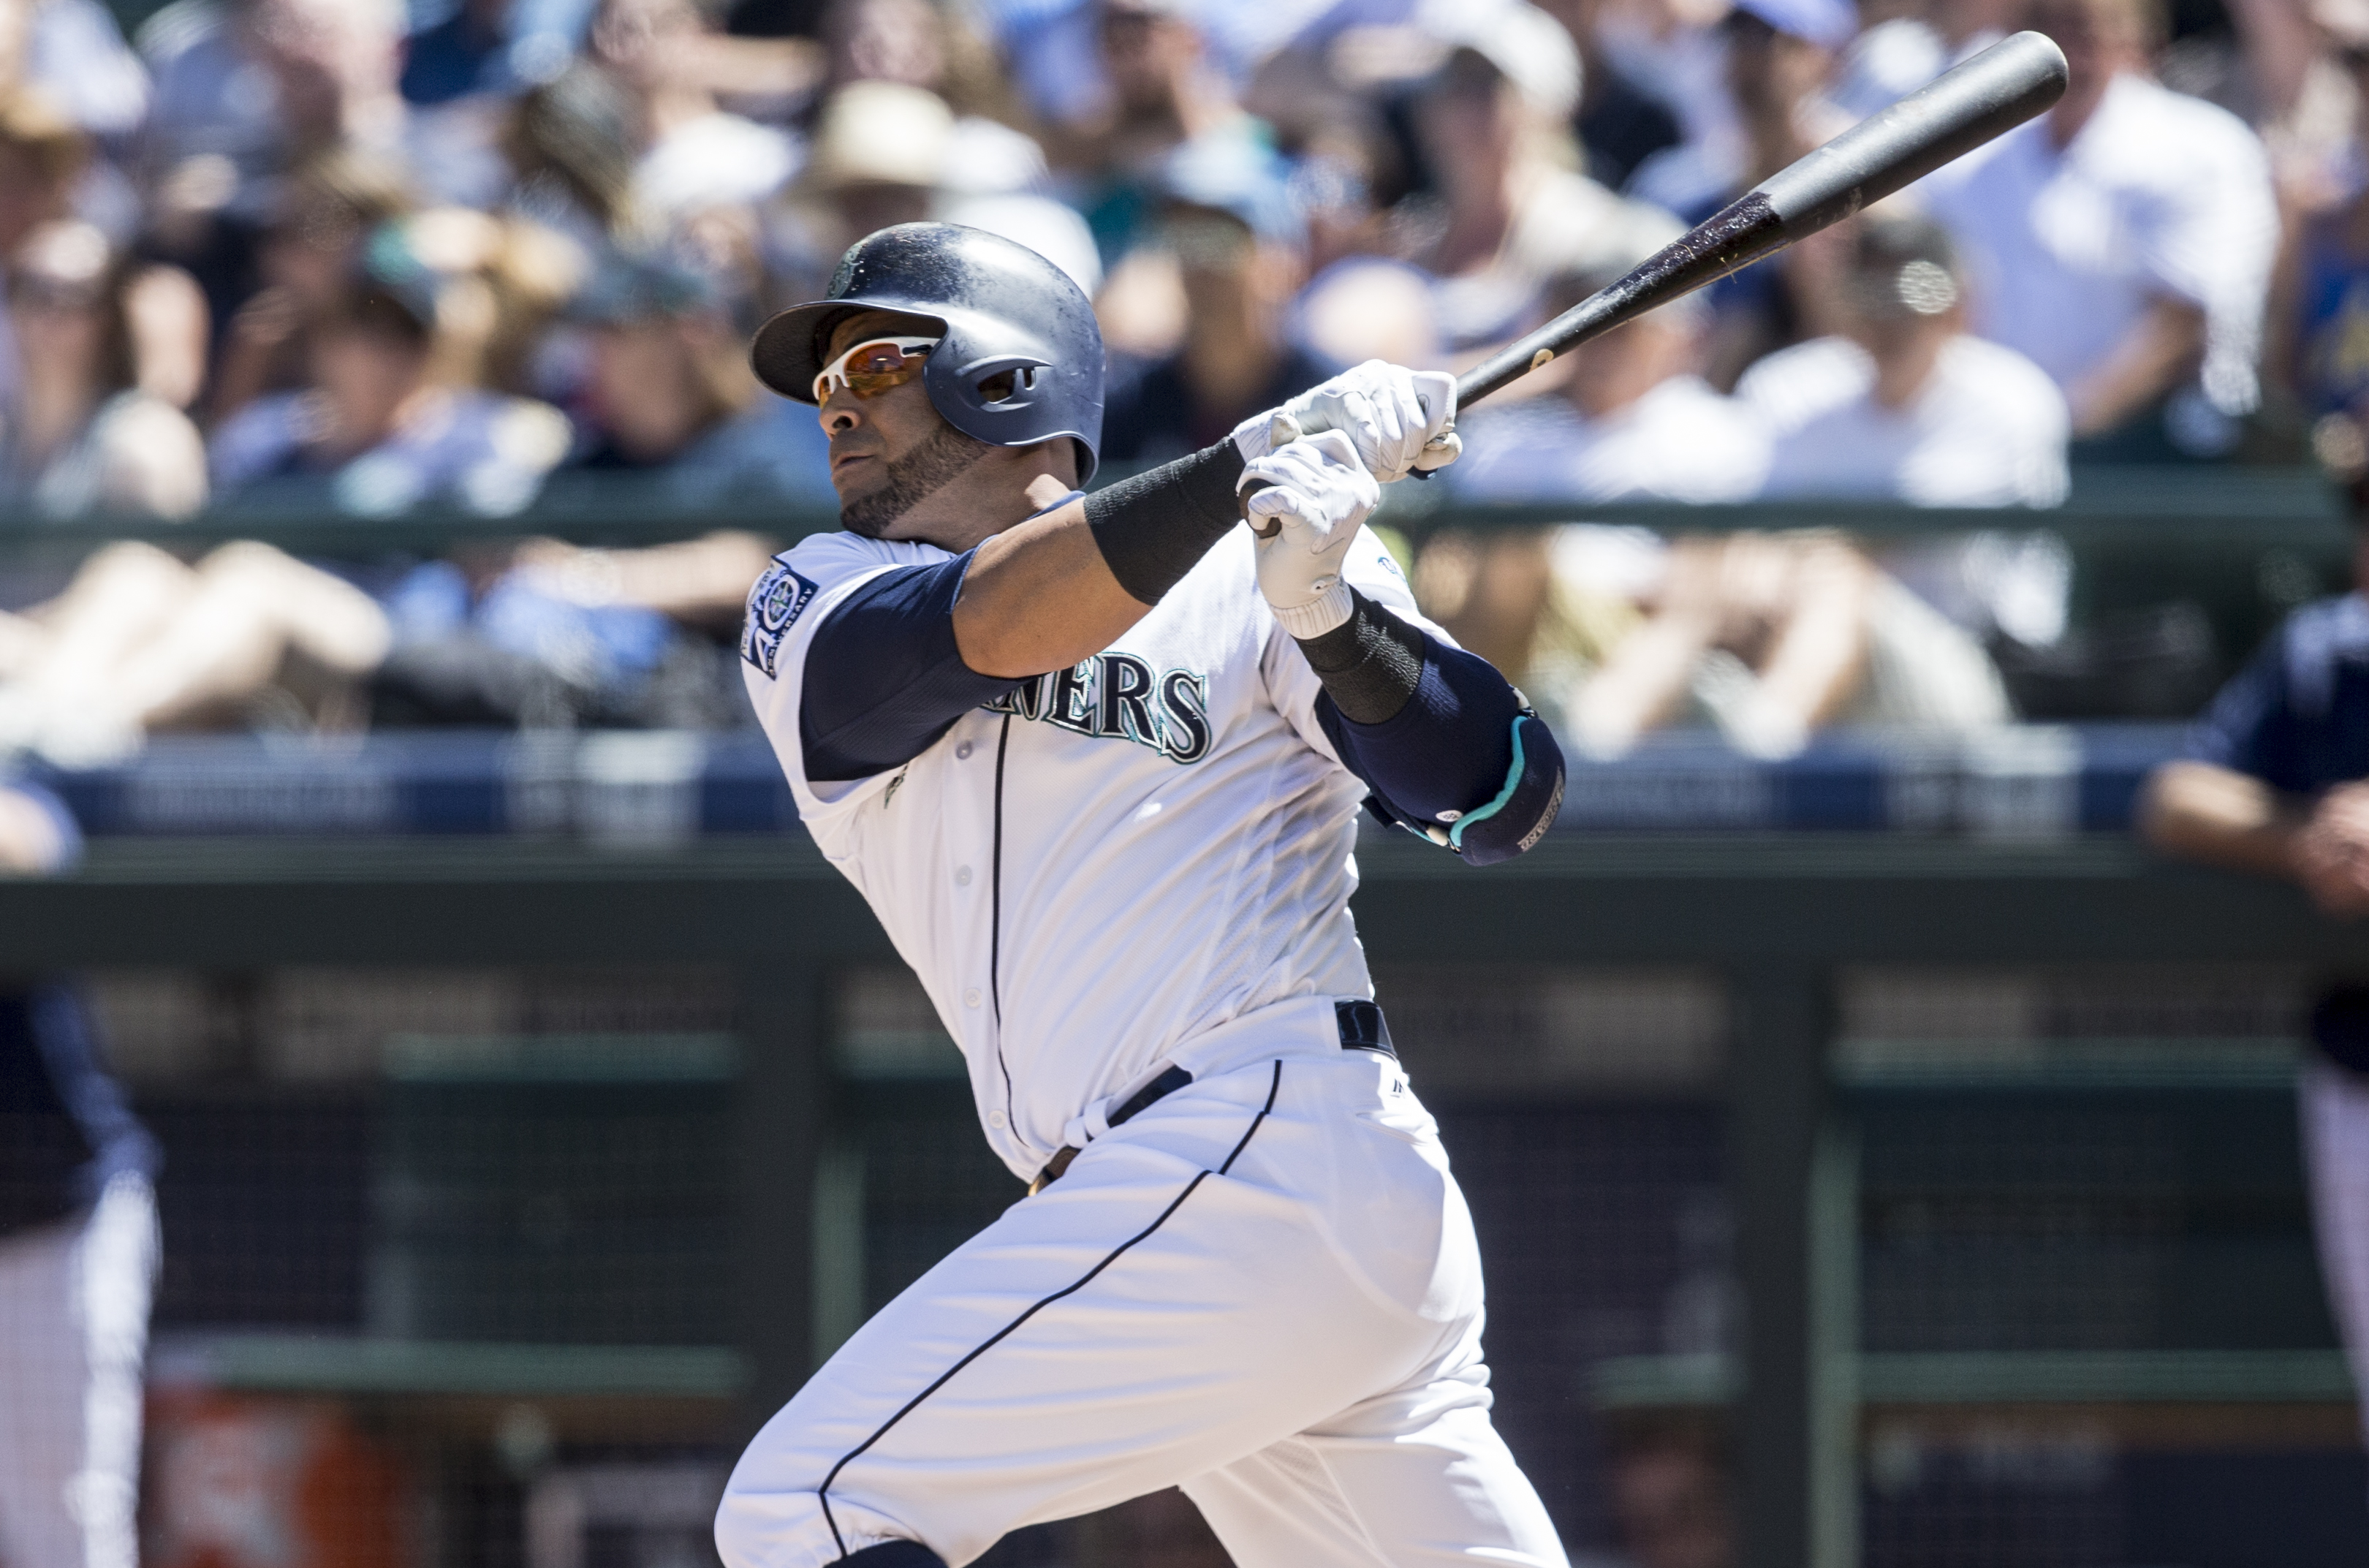 Cruz 2 HRs, Mariners Top Royals 8-7 To Open Doubleheader